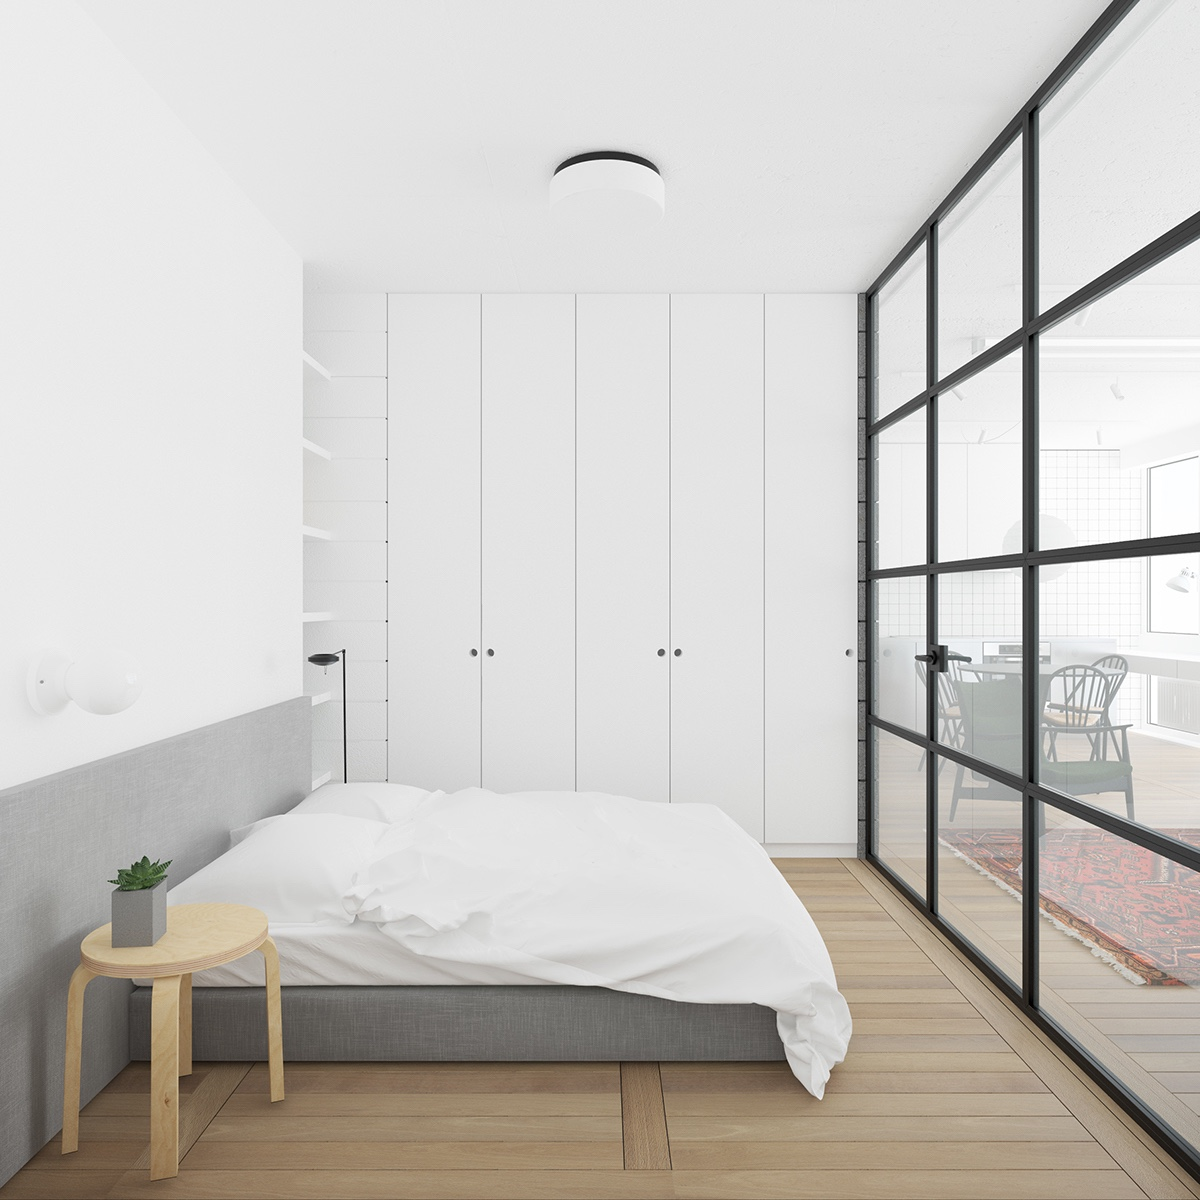 Bedroom Built In Closet Wooden Floors - 3 fabulously sleek studio apartments that are timeless